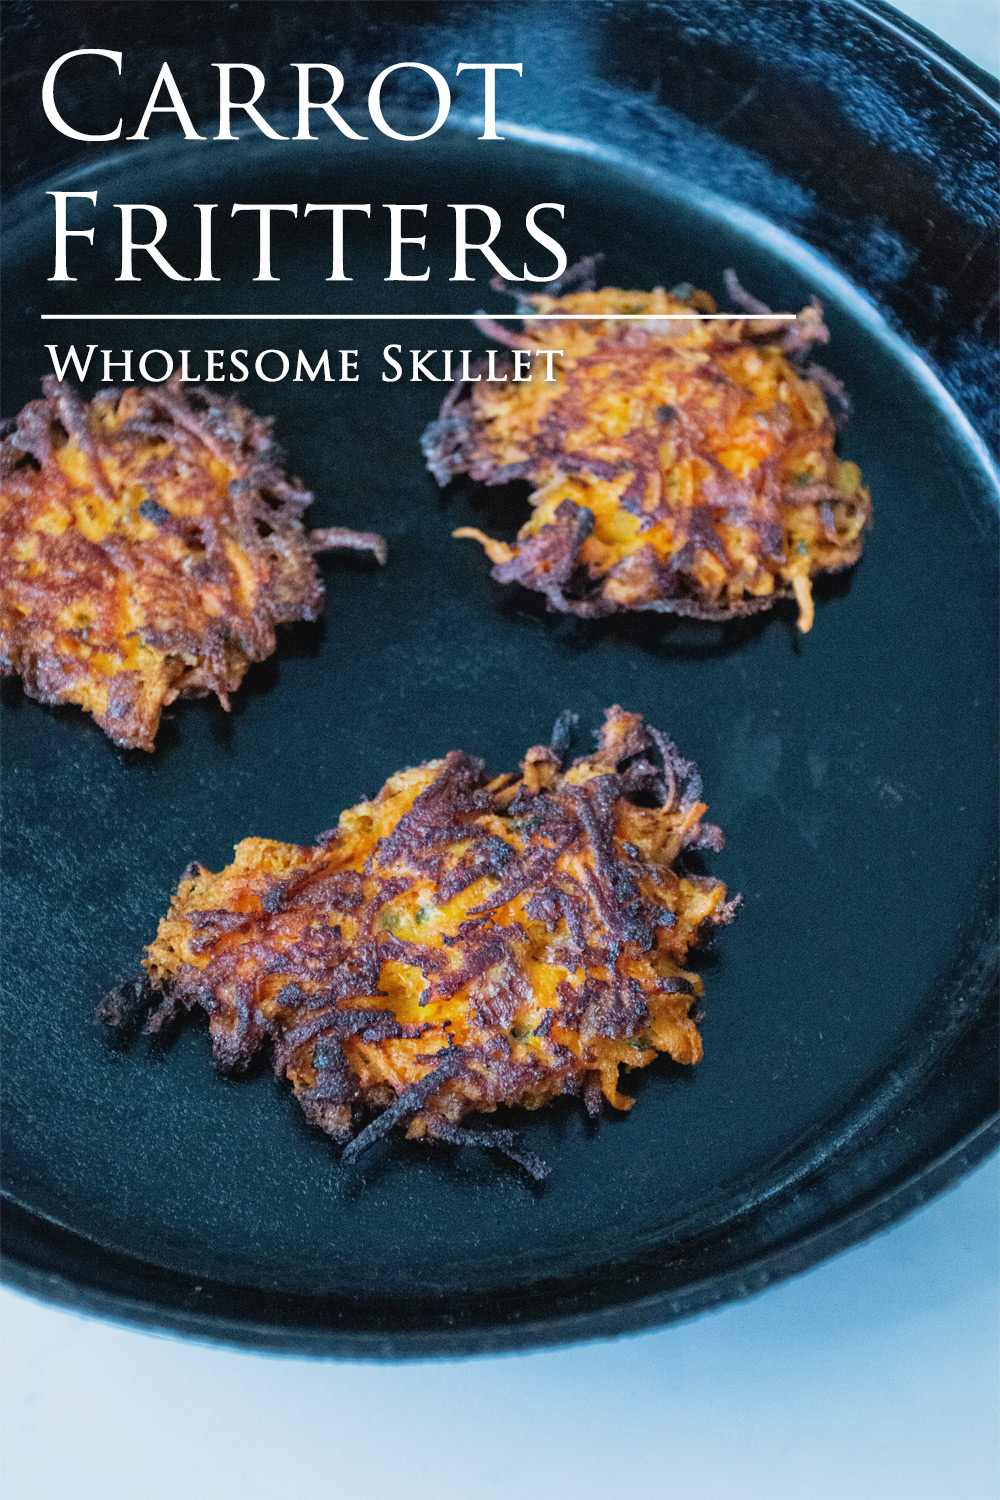 Savory Carrot Fritters | Wholesome Skillet